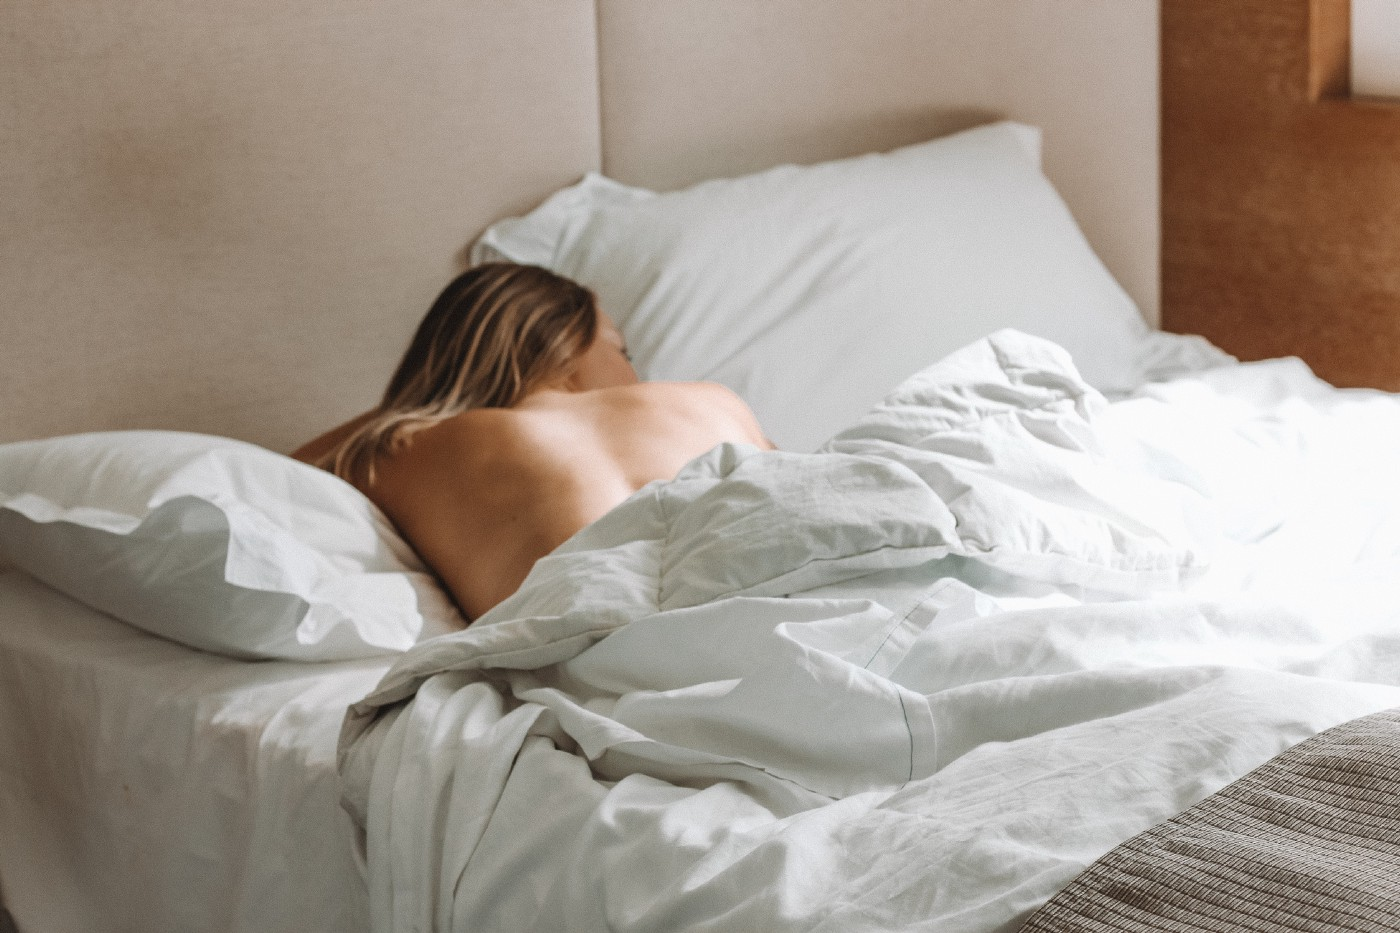 A bed with white linens with a long haired woman laying on her stomach sleeping. Sunlight streams in.